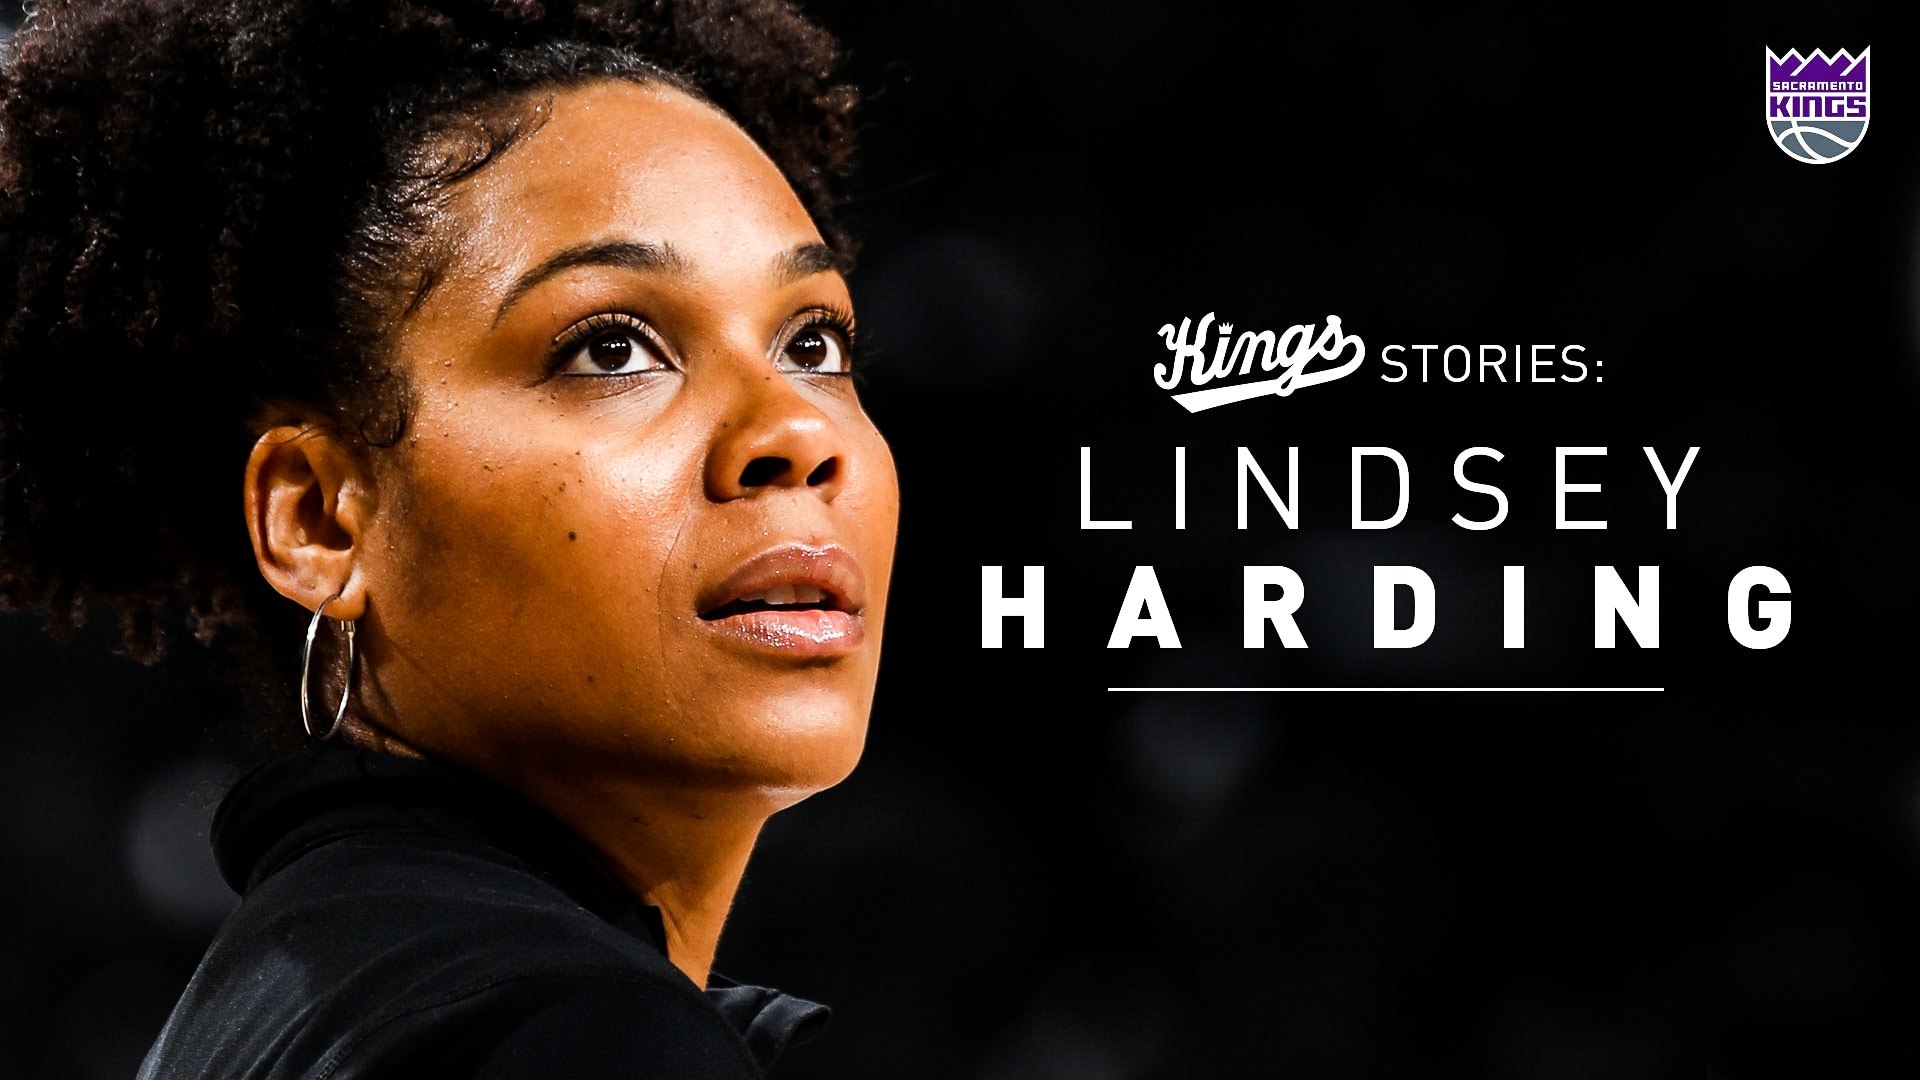 Lindsey Harding | Kings Stories